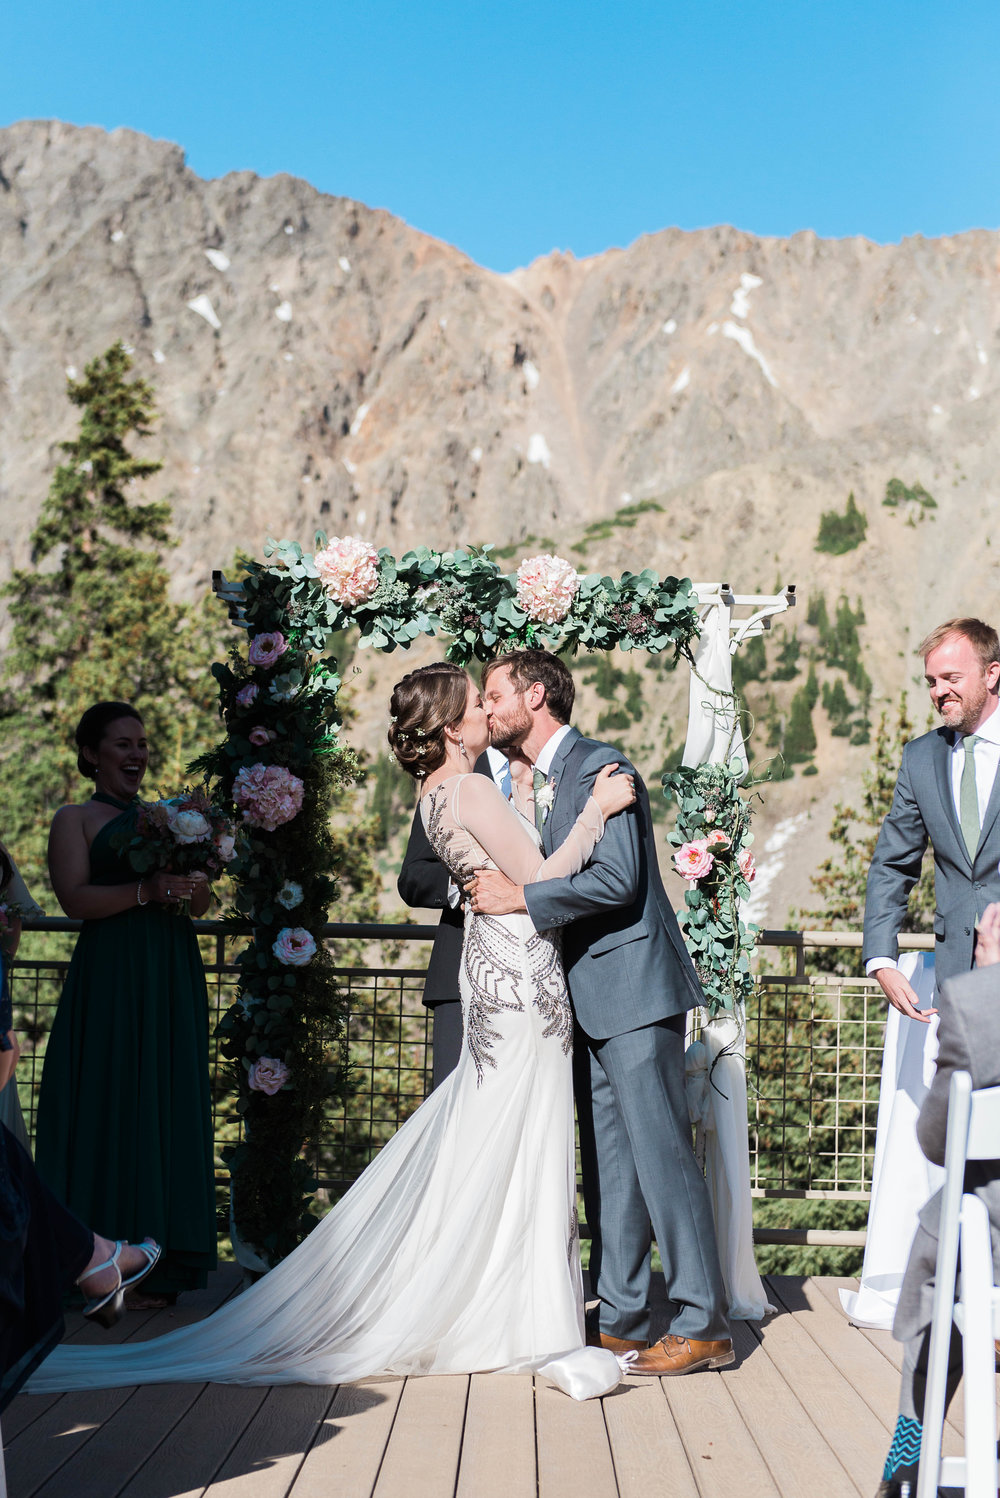 AshleighMillerWeddings-MichelleAllen-ArapahoeBasin-Colorado-3336.jpg